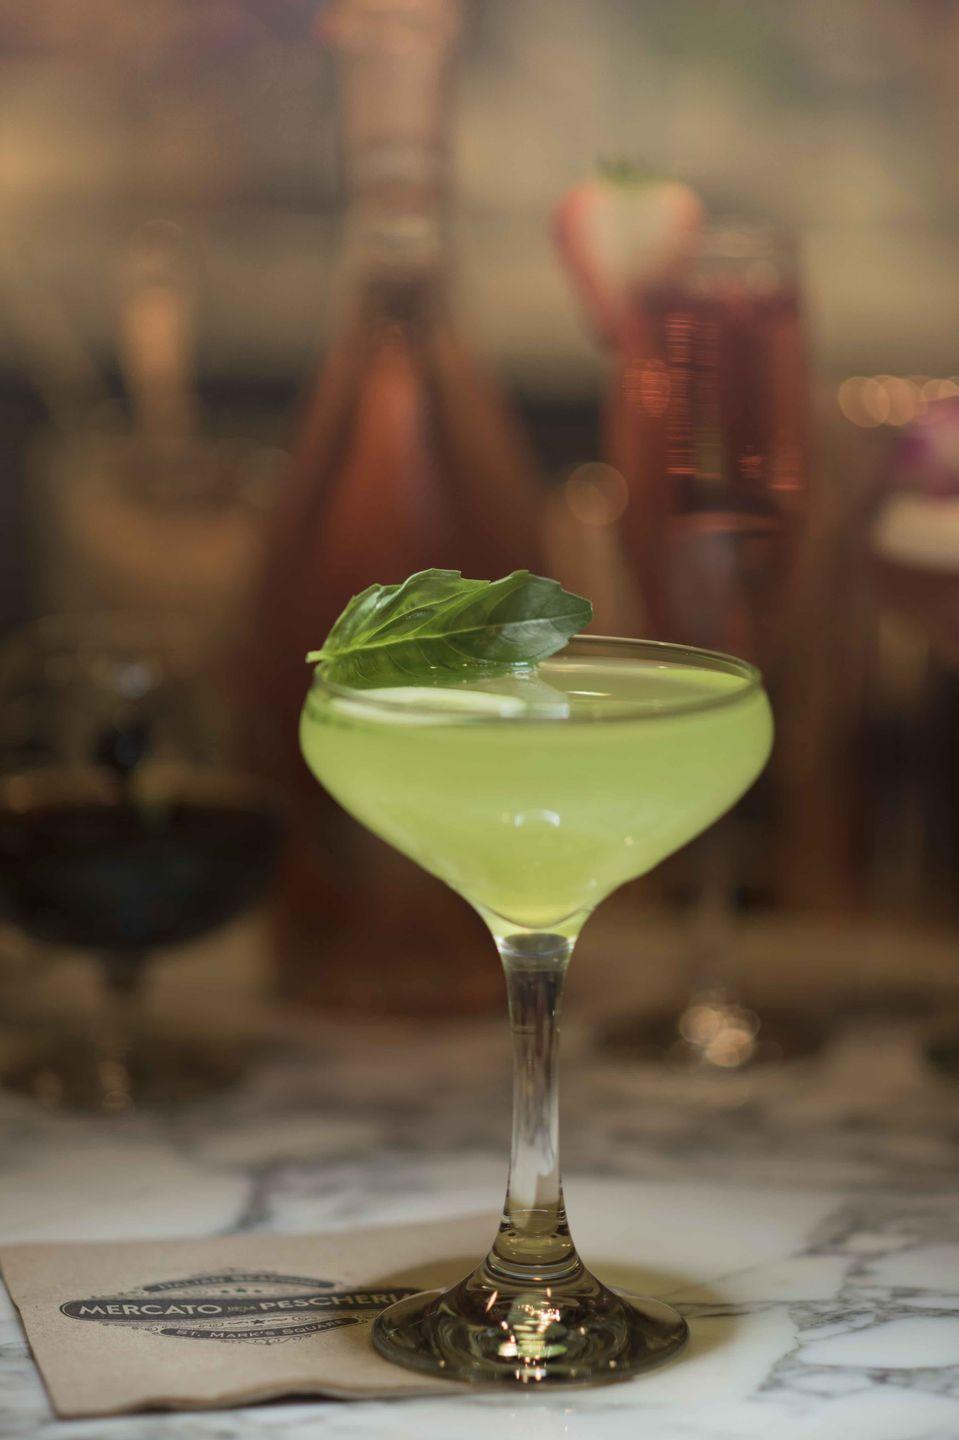 <p><strong>Ingredients</strong></p><p>4 cucumber slices for garnish<br>1.5 oz Bulldog Gin<br>1 oz Caravella Limoncello<br>4 dashes cucumber bitters<br>.5 oz lemon juice<br>3 basil leaves<br></p><p><strong>I</strong><strong>nstructions</strong></p><p>In a mixing glass, muddle the cucumber slices. Add gin, limoncello, cucumber bitters, lemon juice, and basil leaves. Shake and double strain into cocktail coupe.</p><p><em>By Ryan Kelimoff at Mercato della Pescheria at Venetian Las Vegas</em></p>